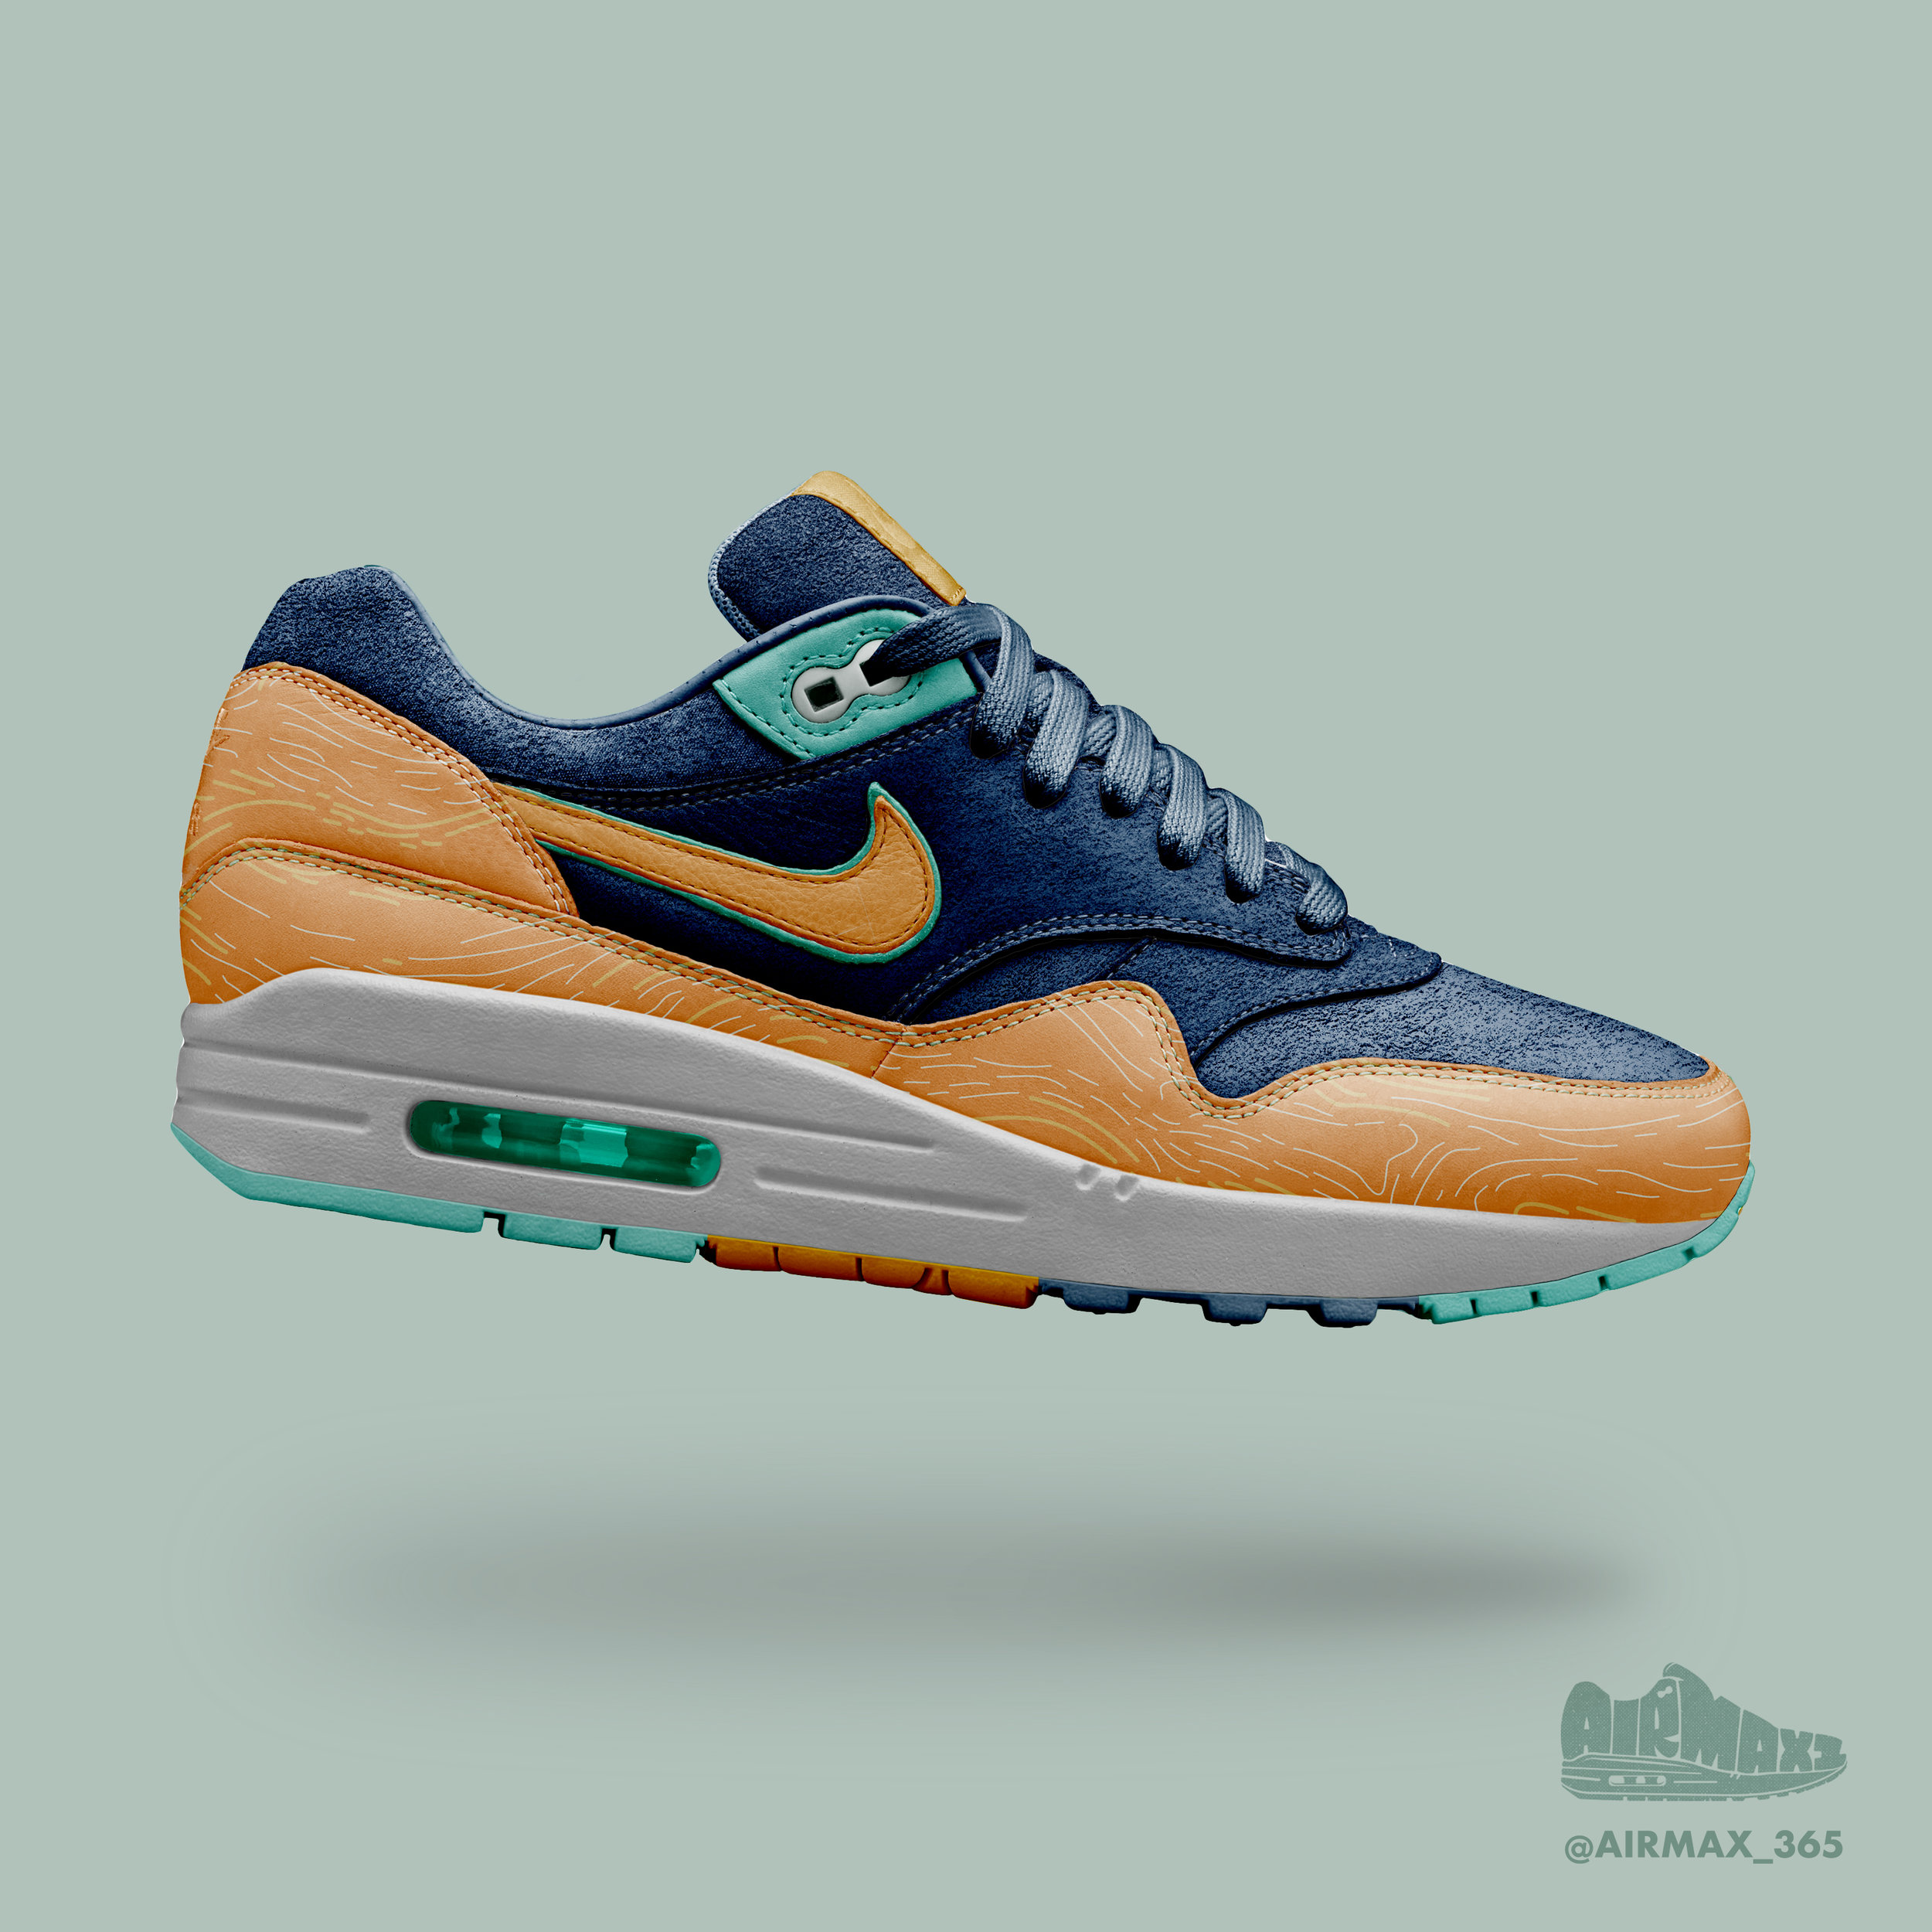 Day 218: Air Max 1 Oyster